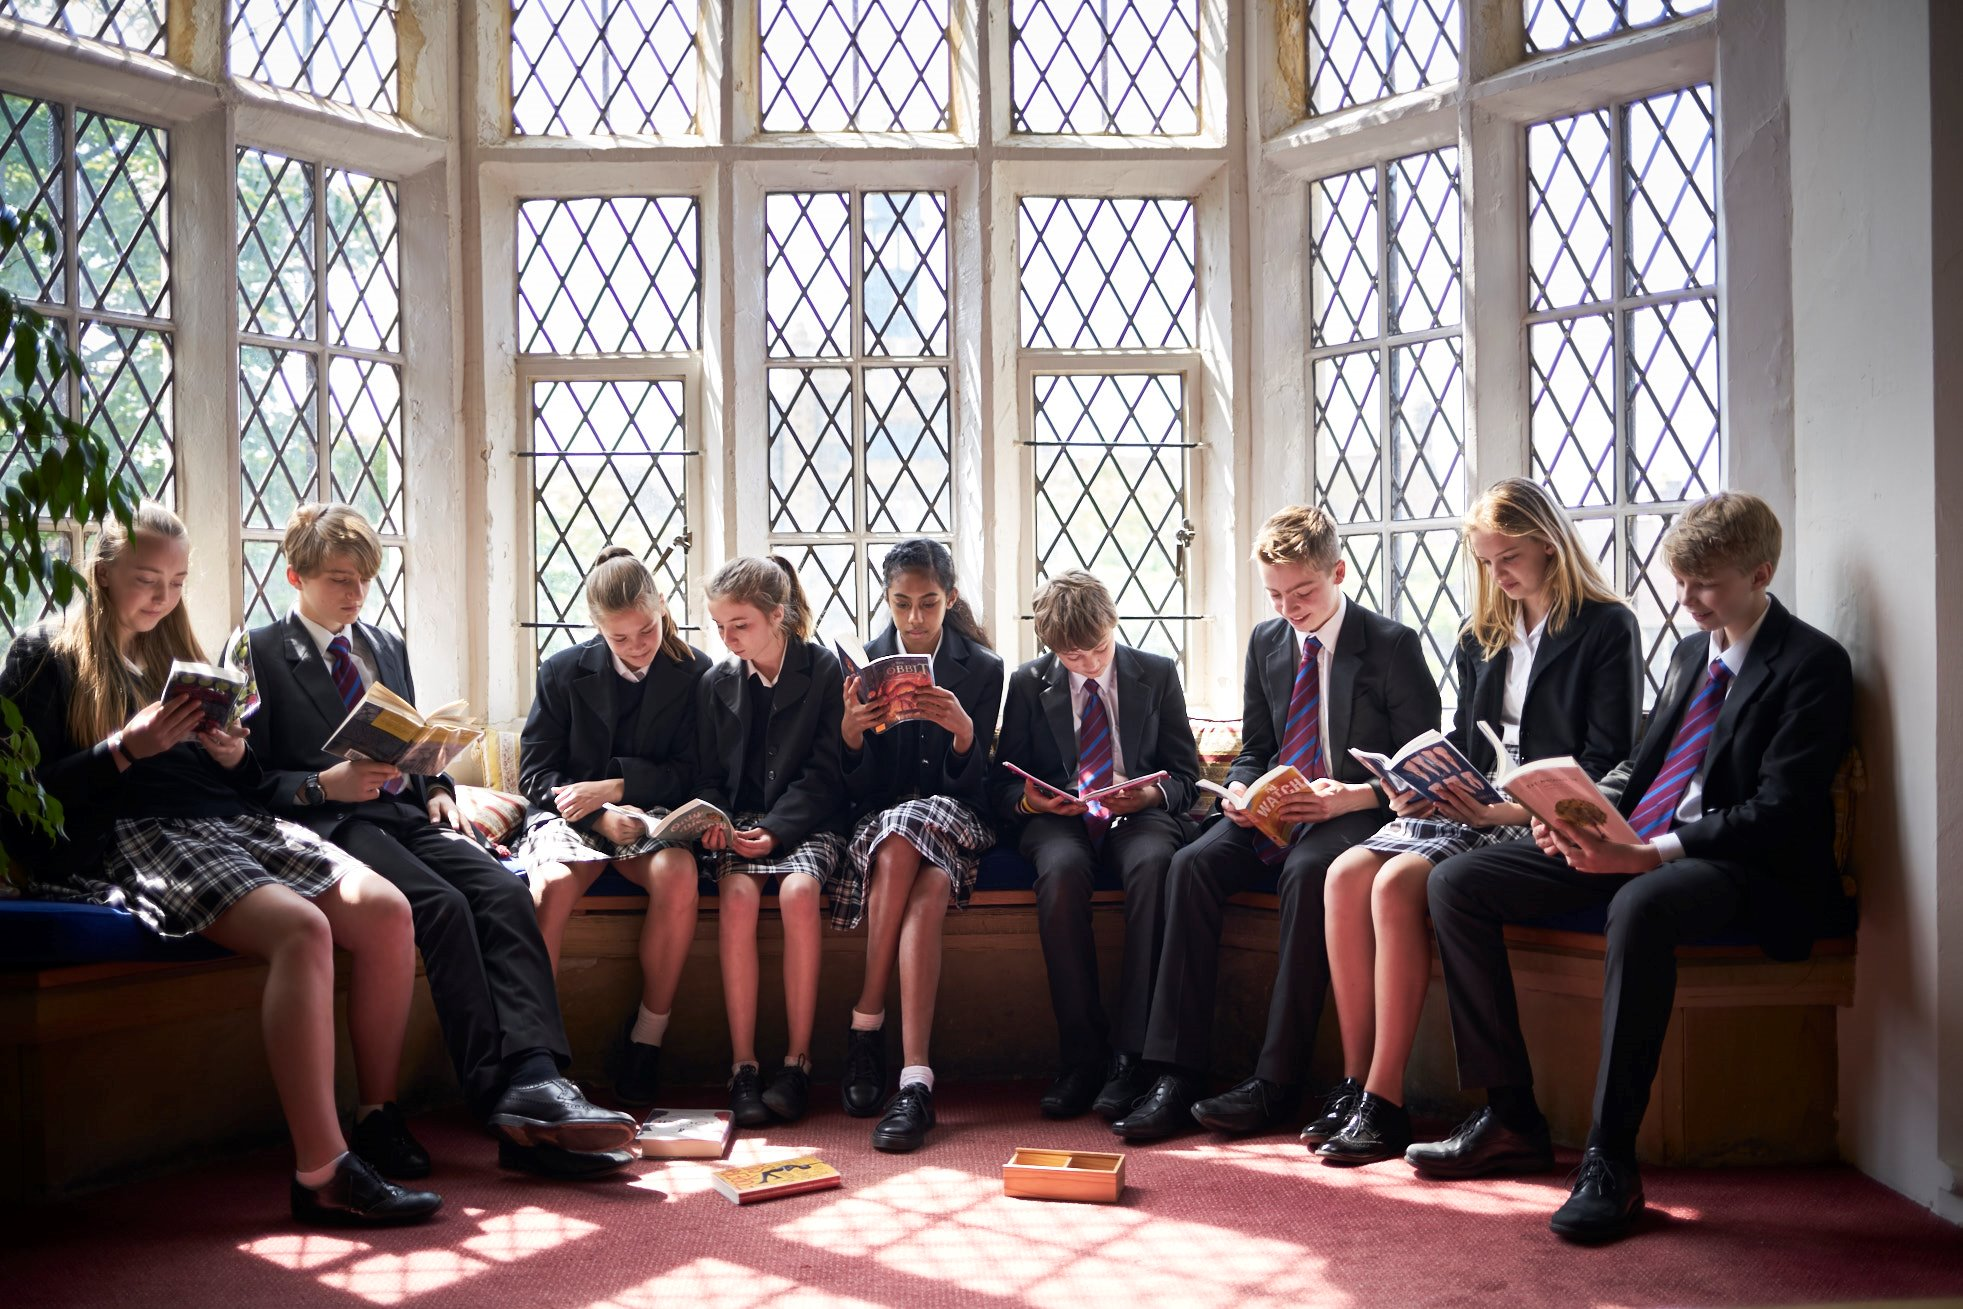 Library pupils reading.jpg